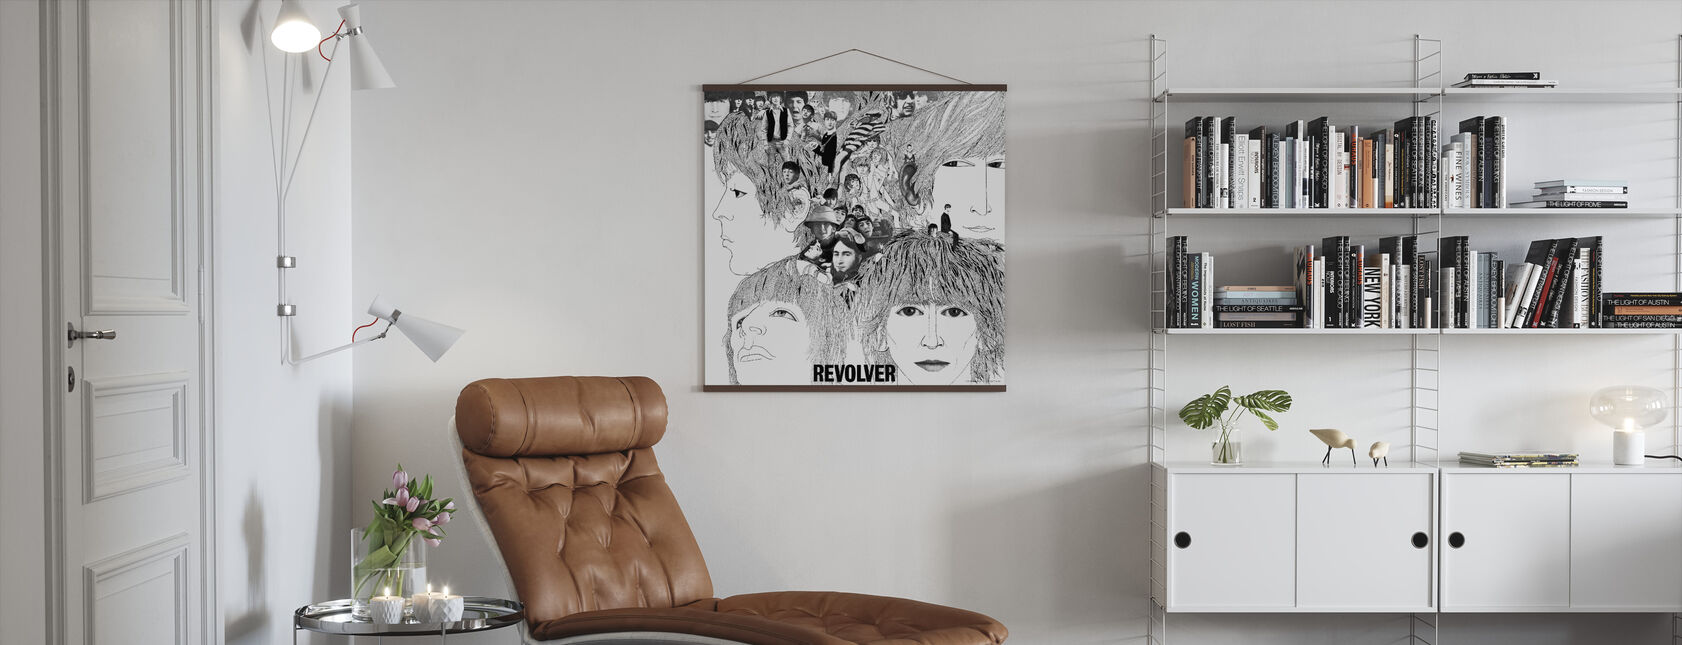 Beatles - Revolver - Poster - Vardagsrum